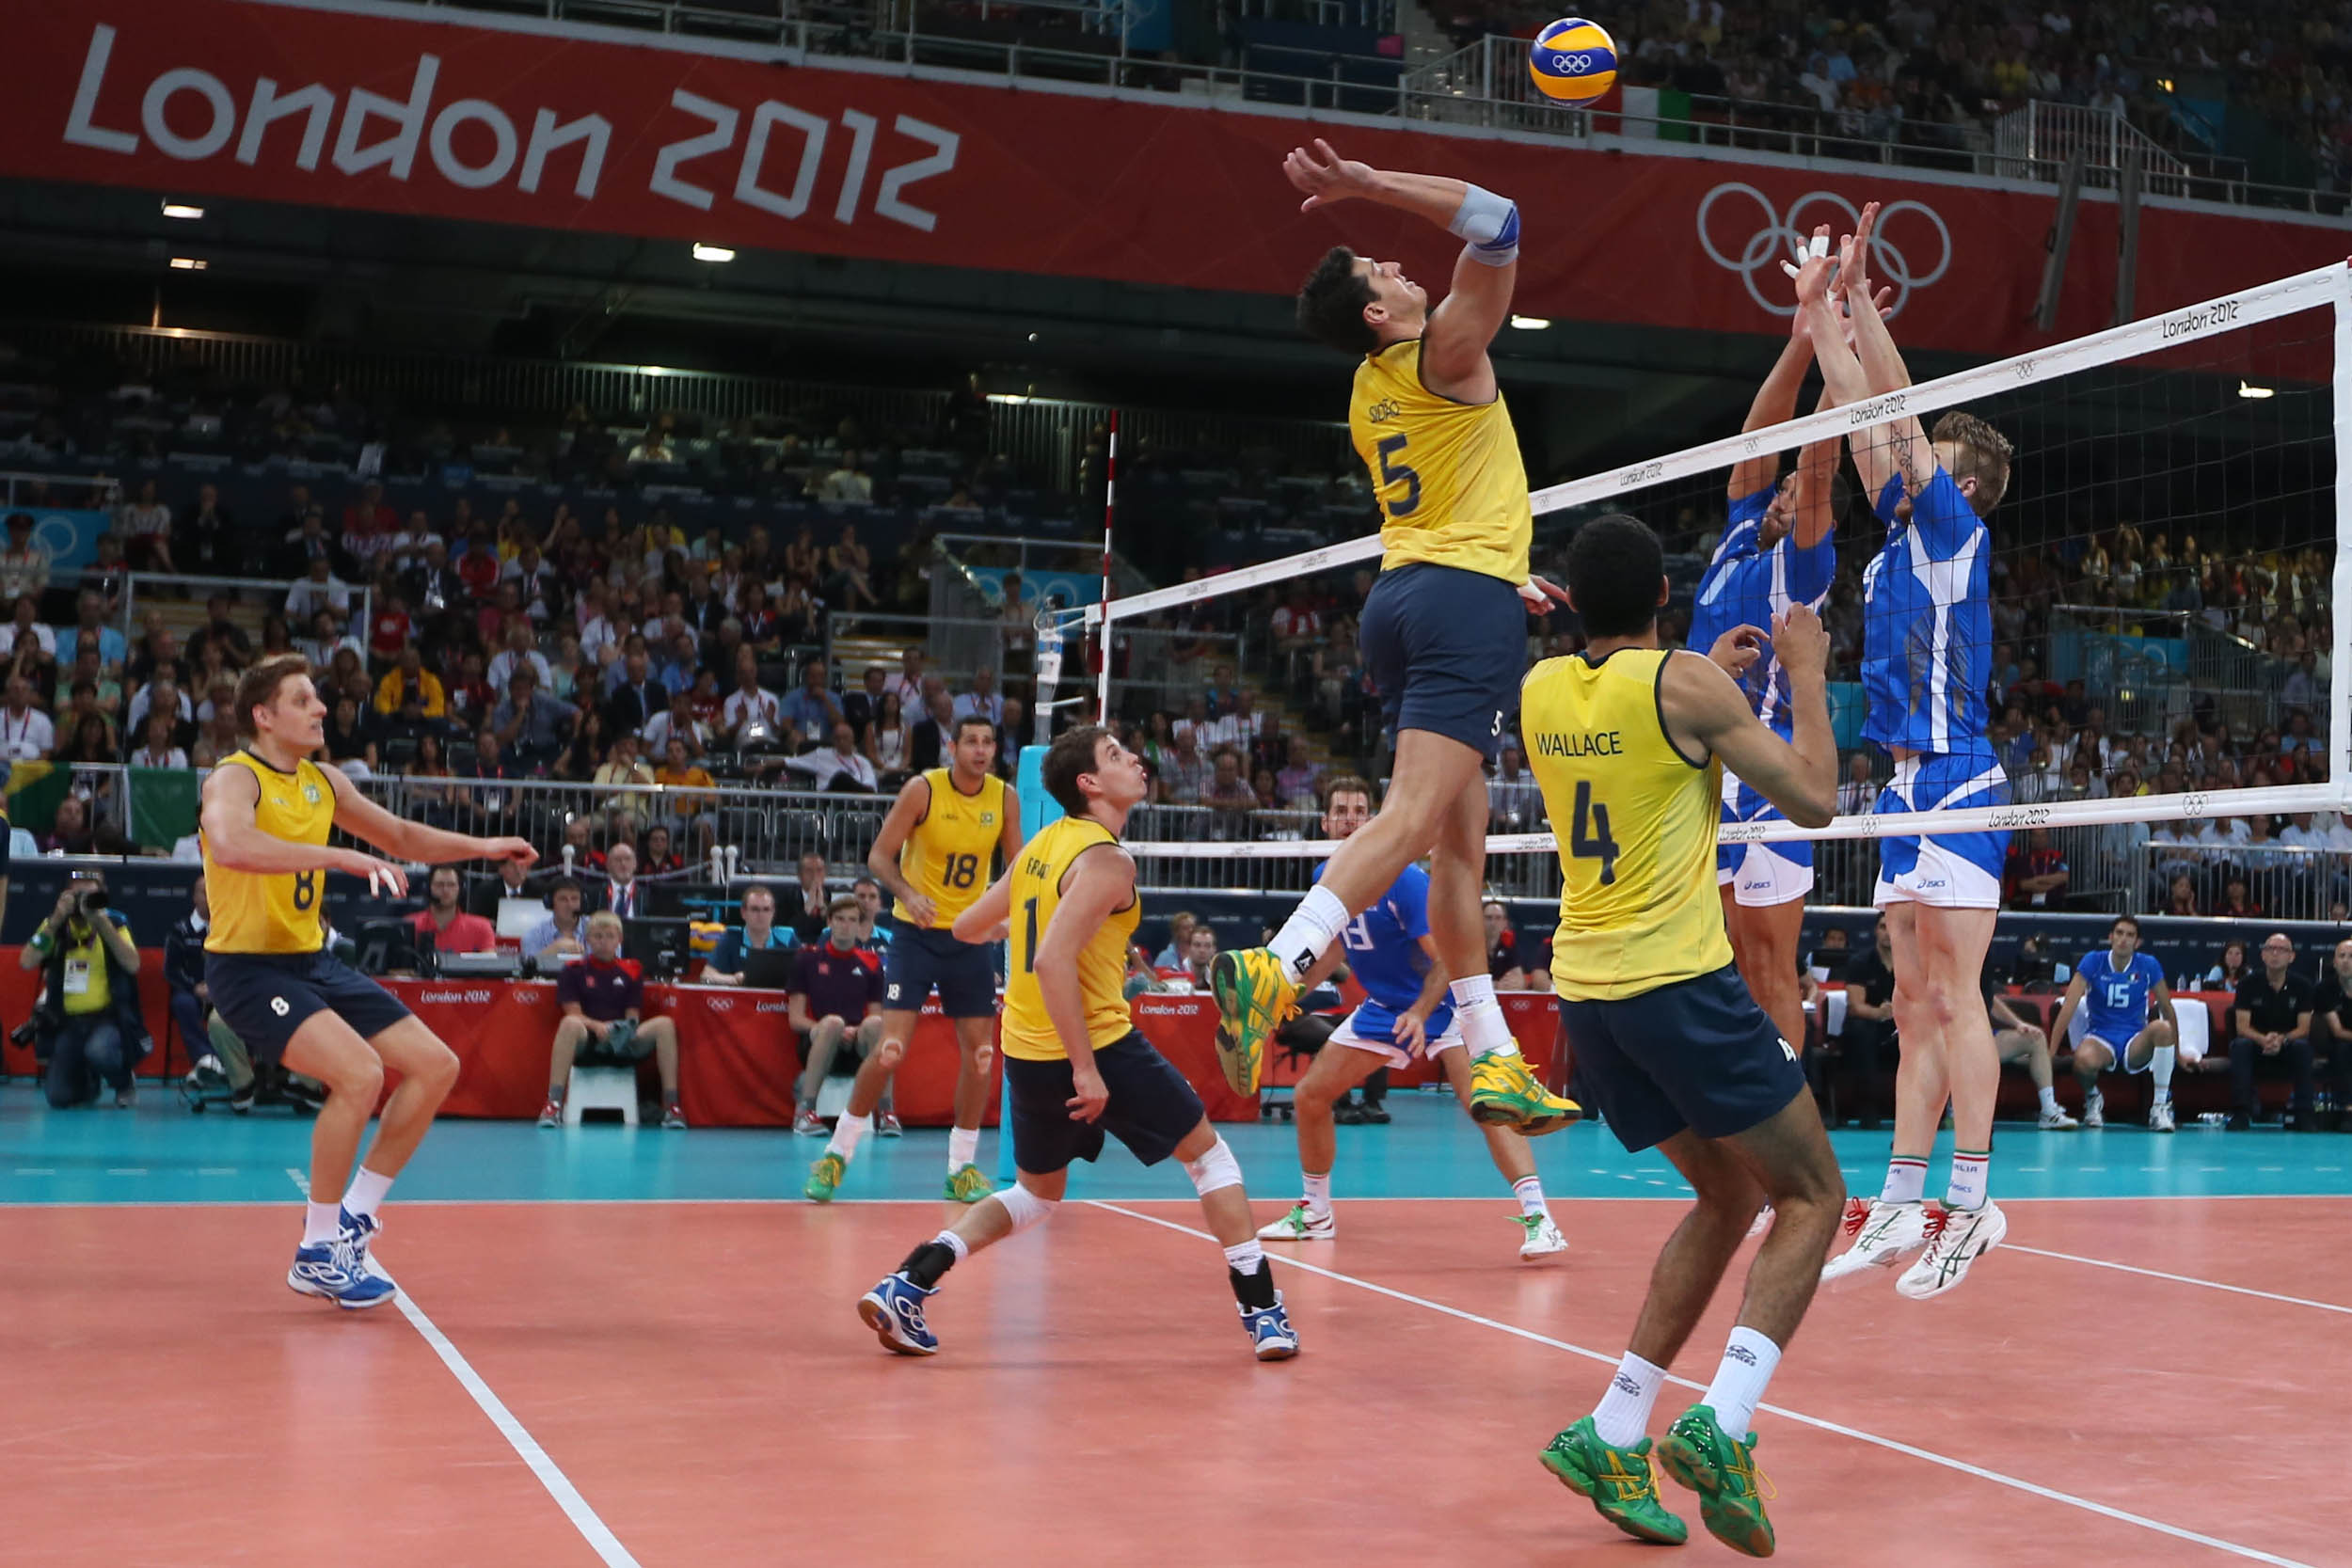 Londres 2012, Volley